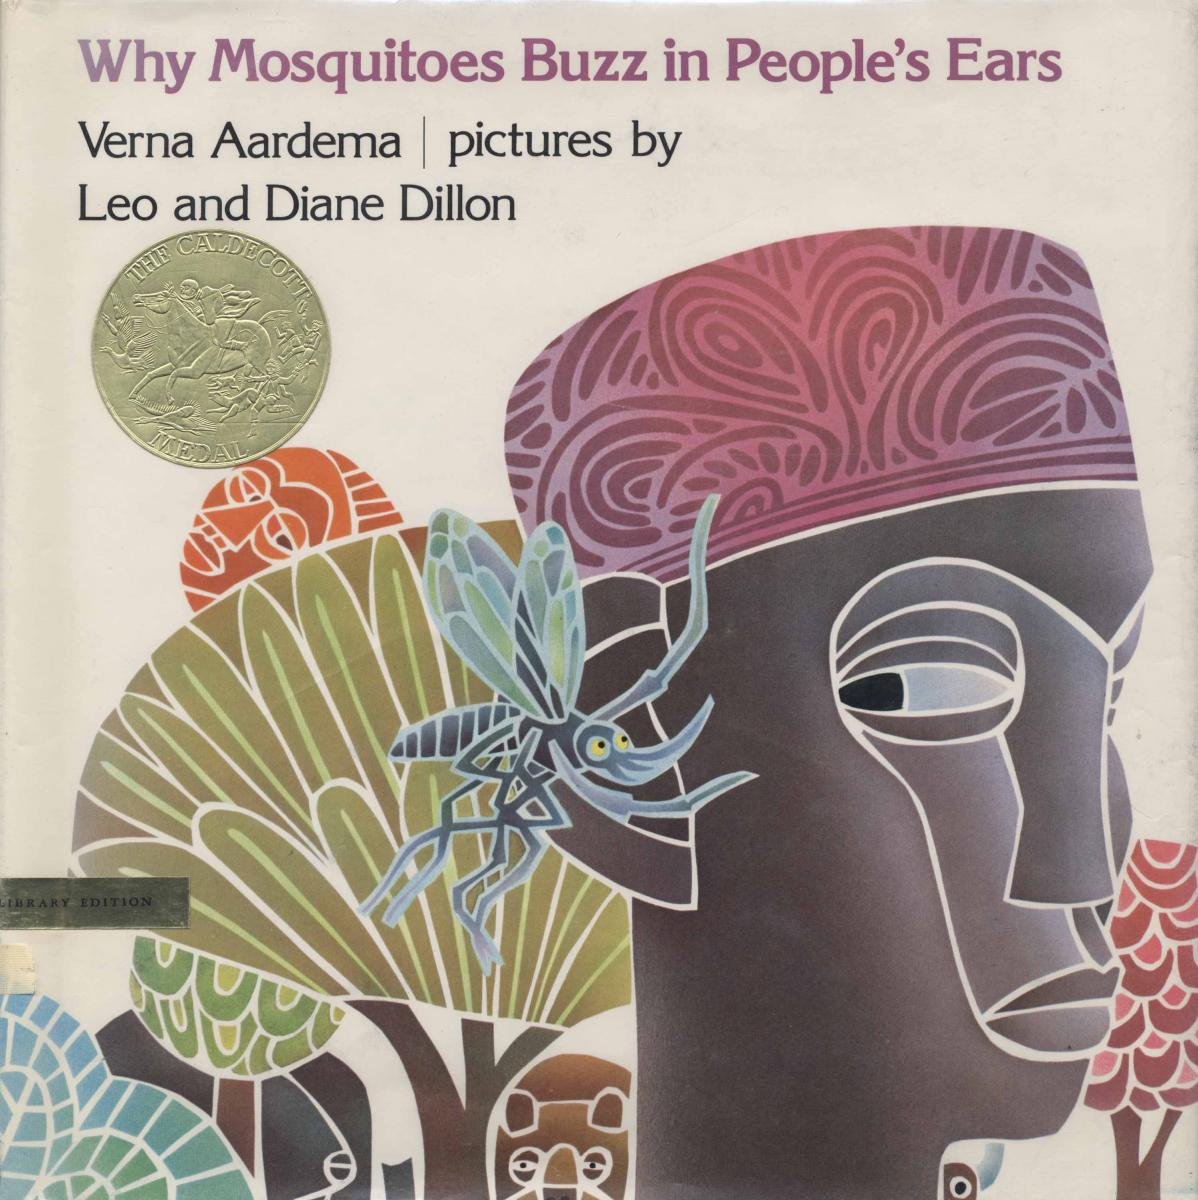 Why Mosquitoes Buzz in People's Ears - book cover image